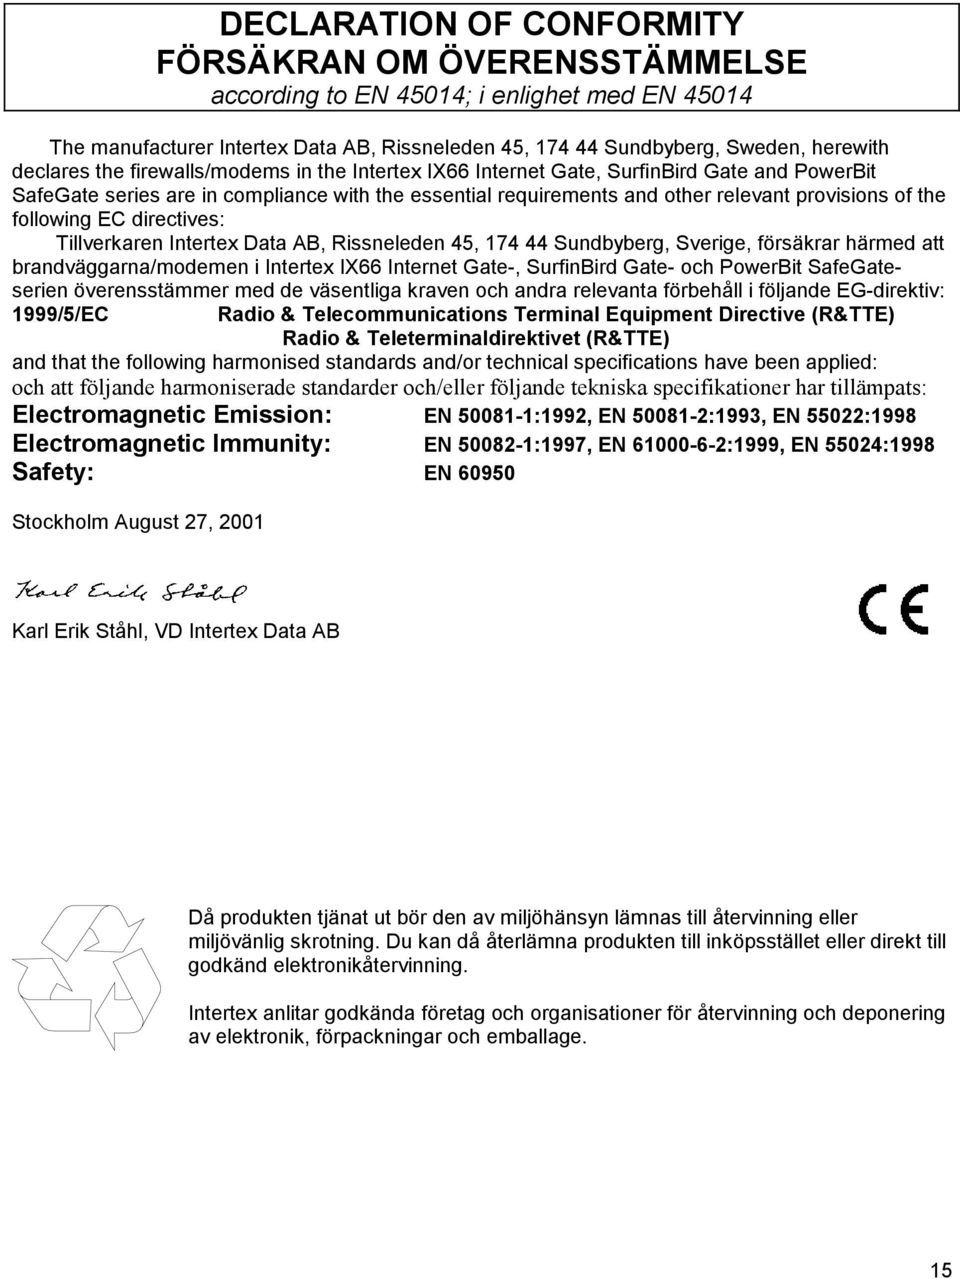 EC directives: Tillverkaren Intertex Data AB, Rissneleden 45, 174 44 Sundbyberg, Sverige, försäkrar härmed att brandväggarna/modemen i Intertex IX66 Internet Gate-, SurfinBird Gate- och PowerBit